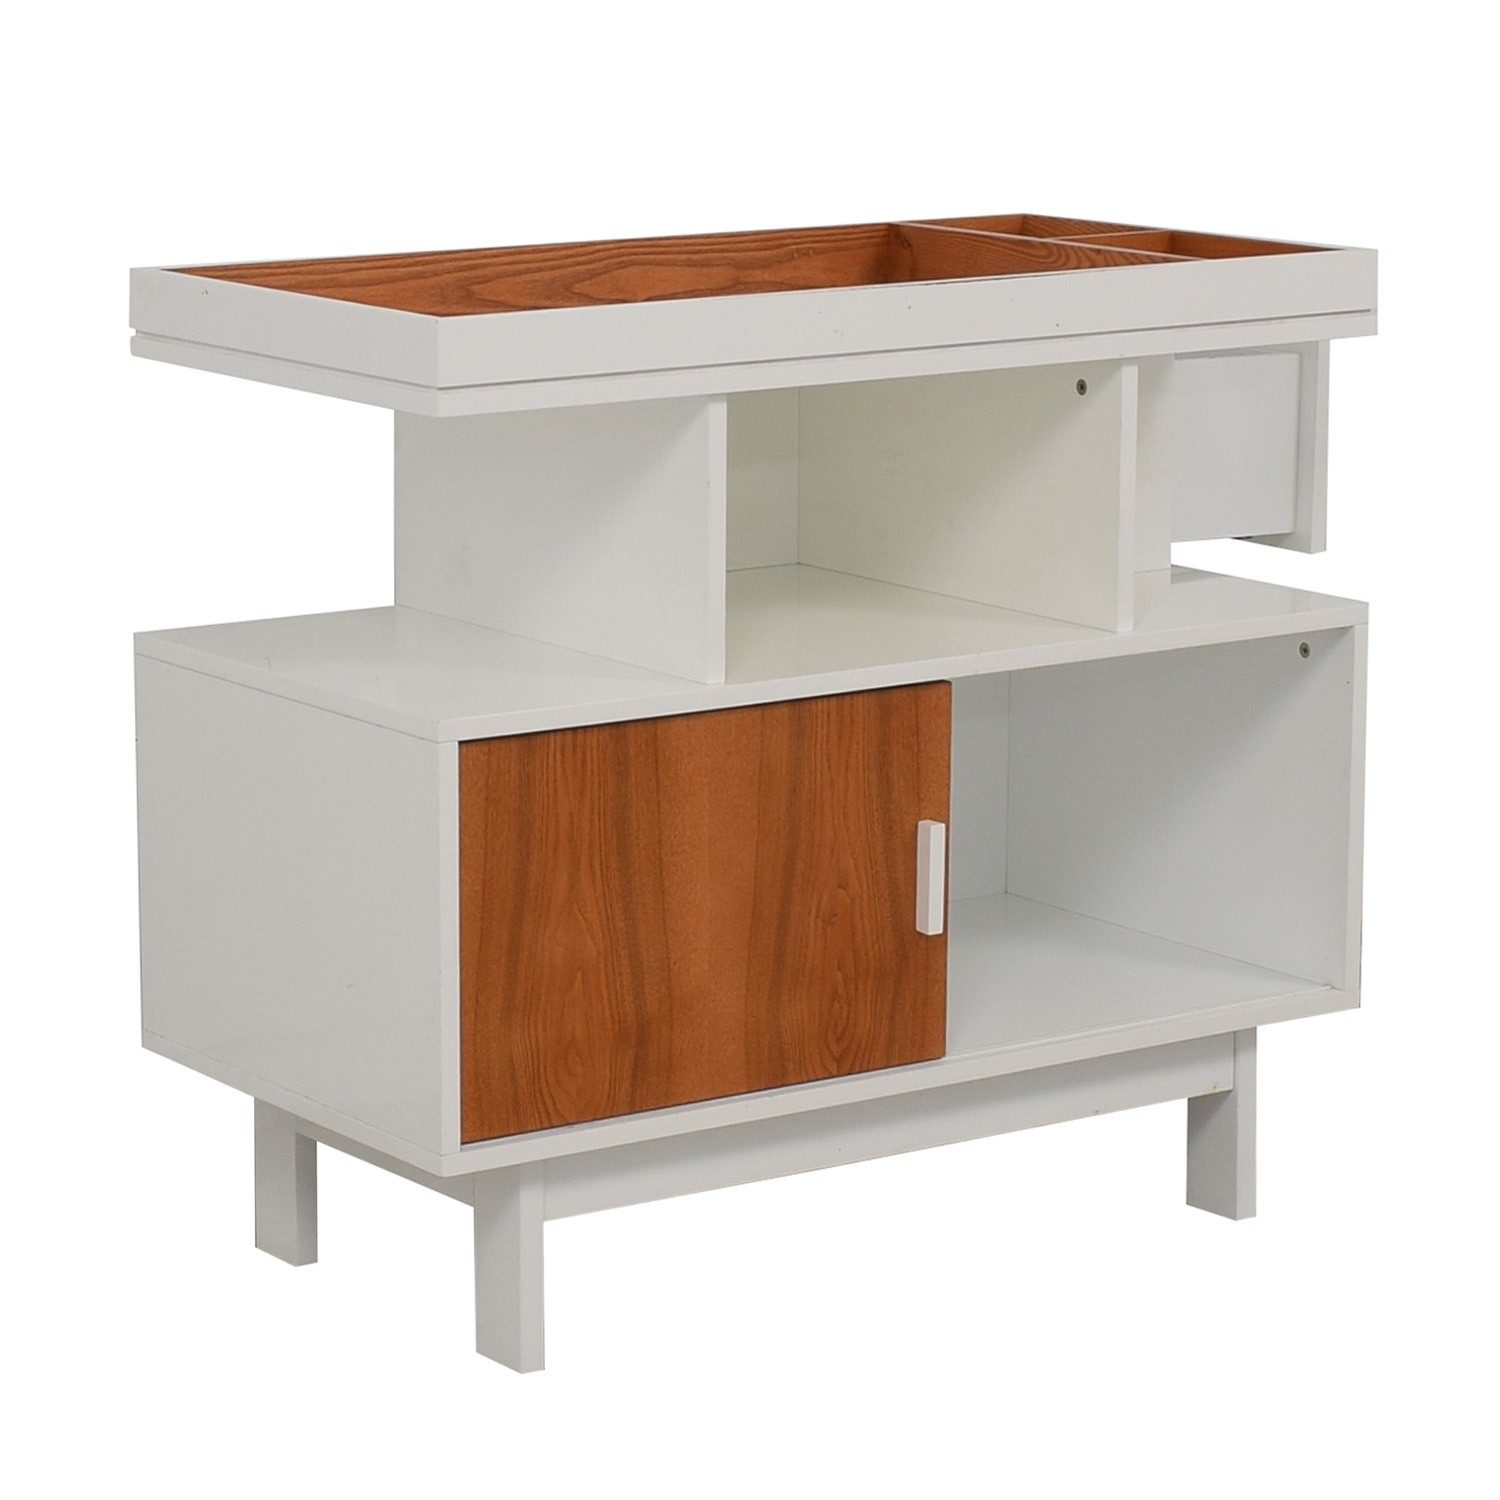 David Netto Changing Table price